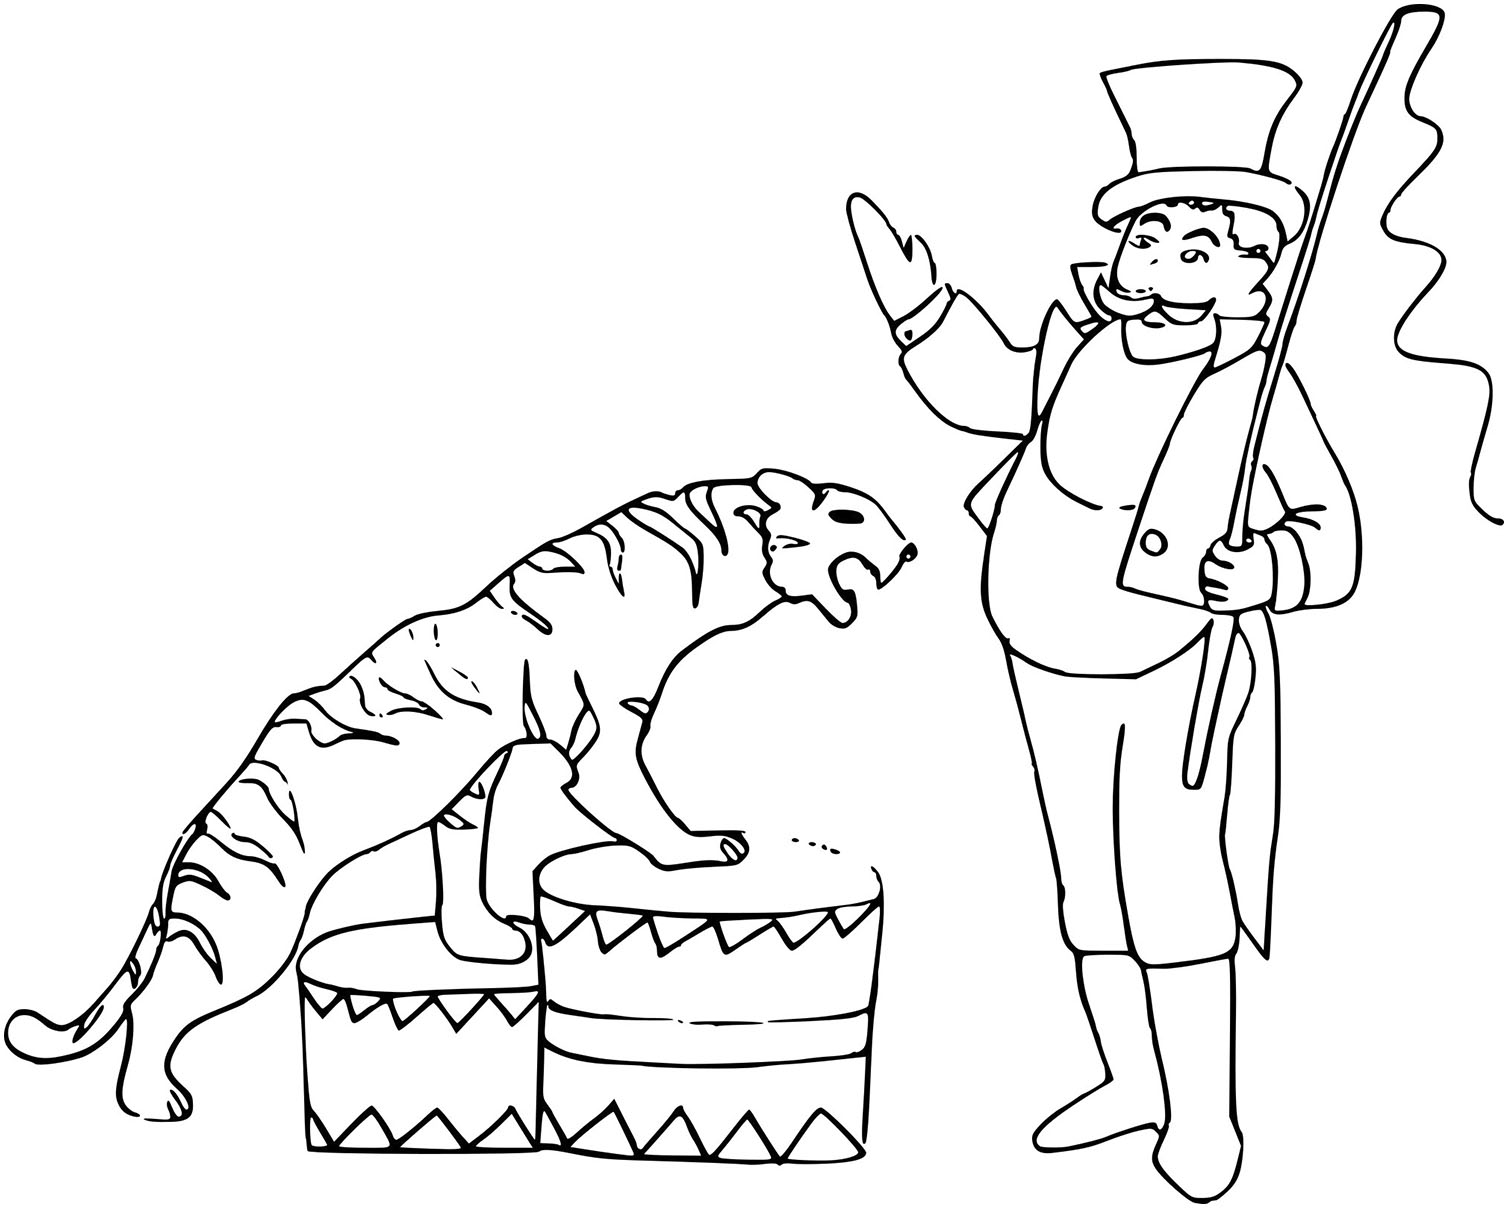 Coloriage Cirque Tigre A Imprimer Sur Coloriages With Regard To